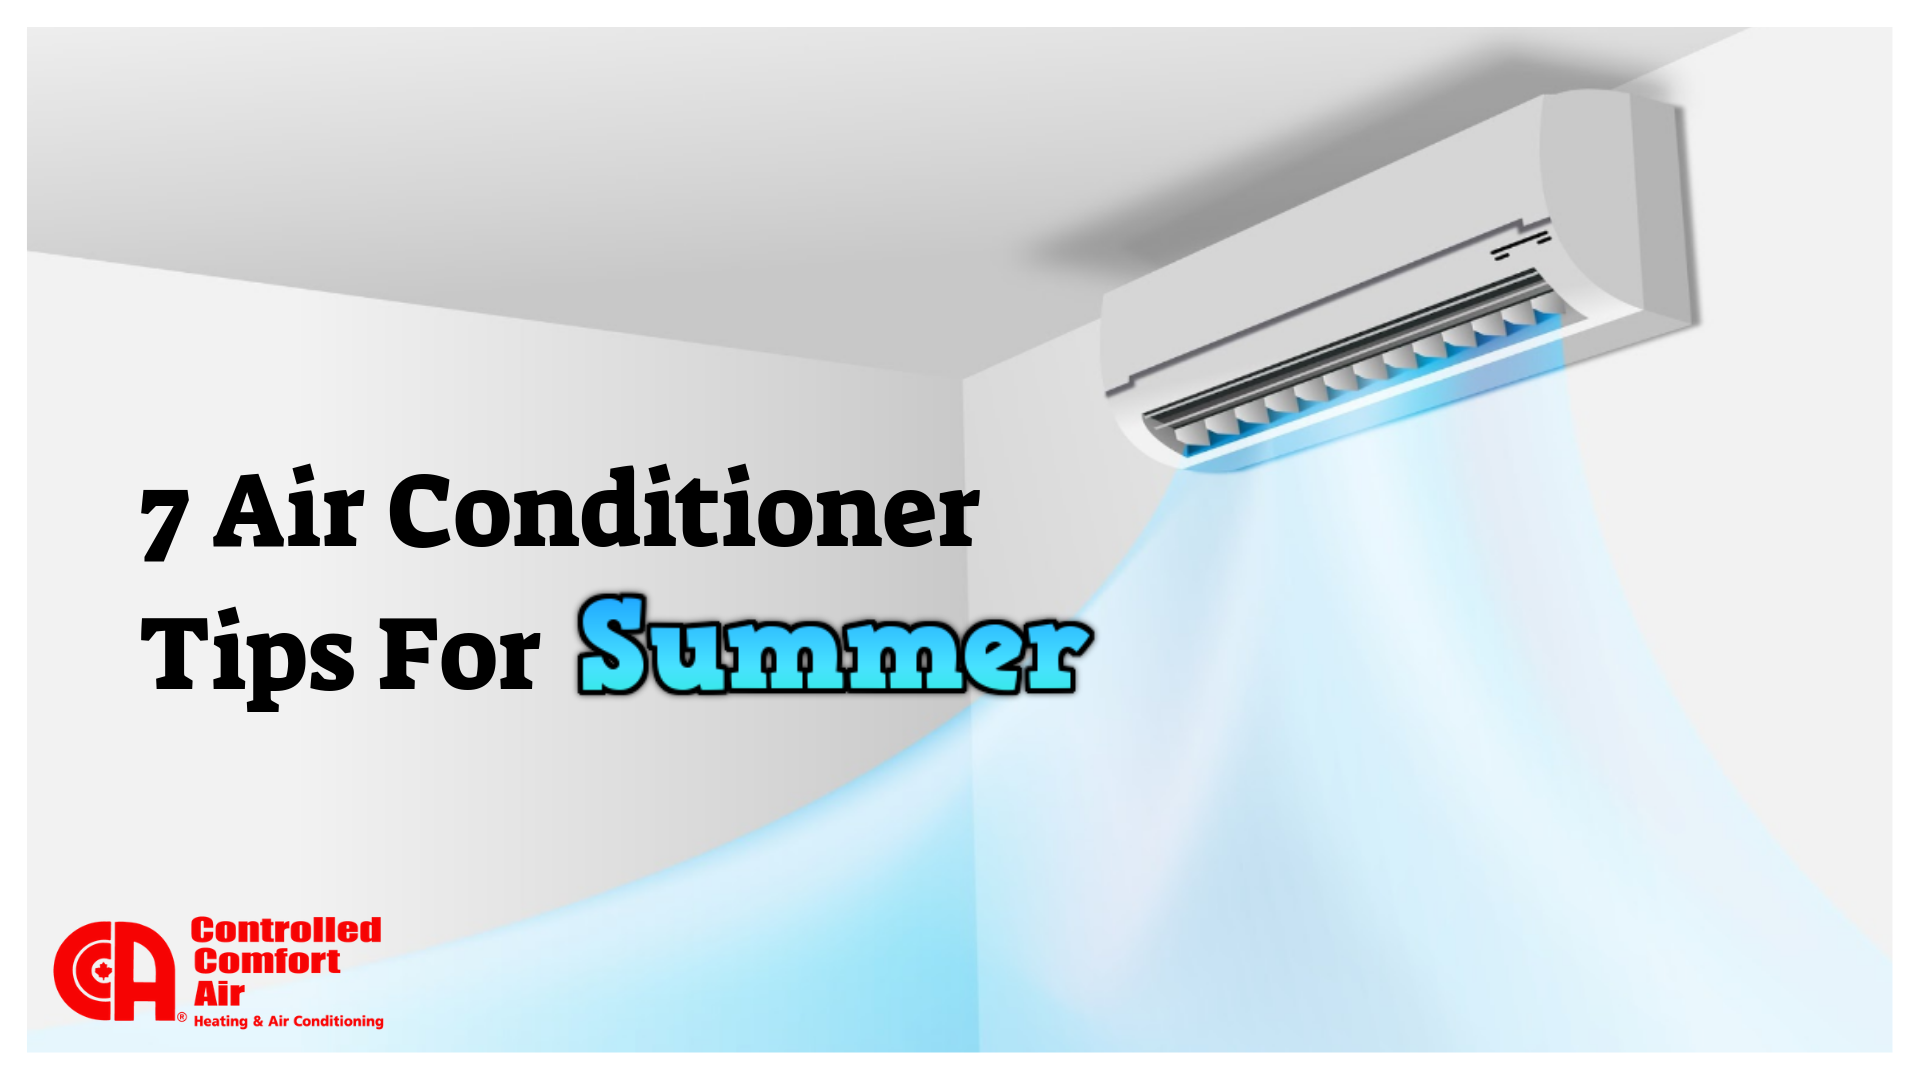 7 Air Conditioner Tips For The Summer